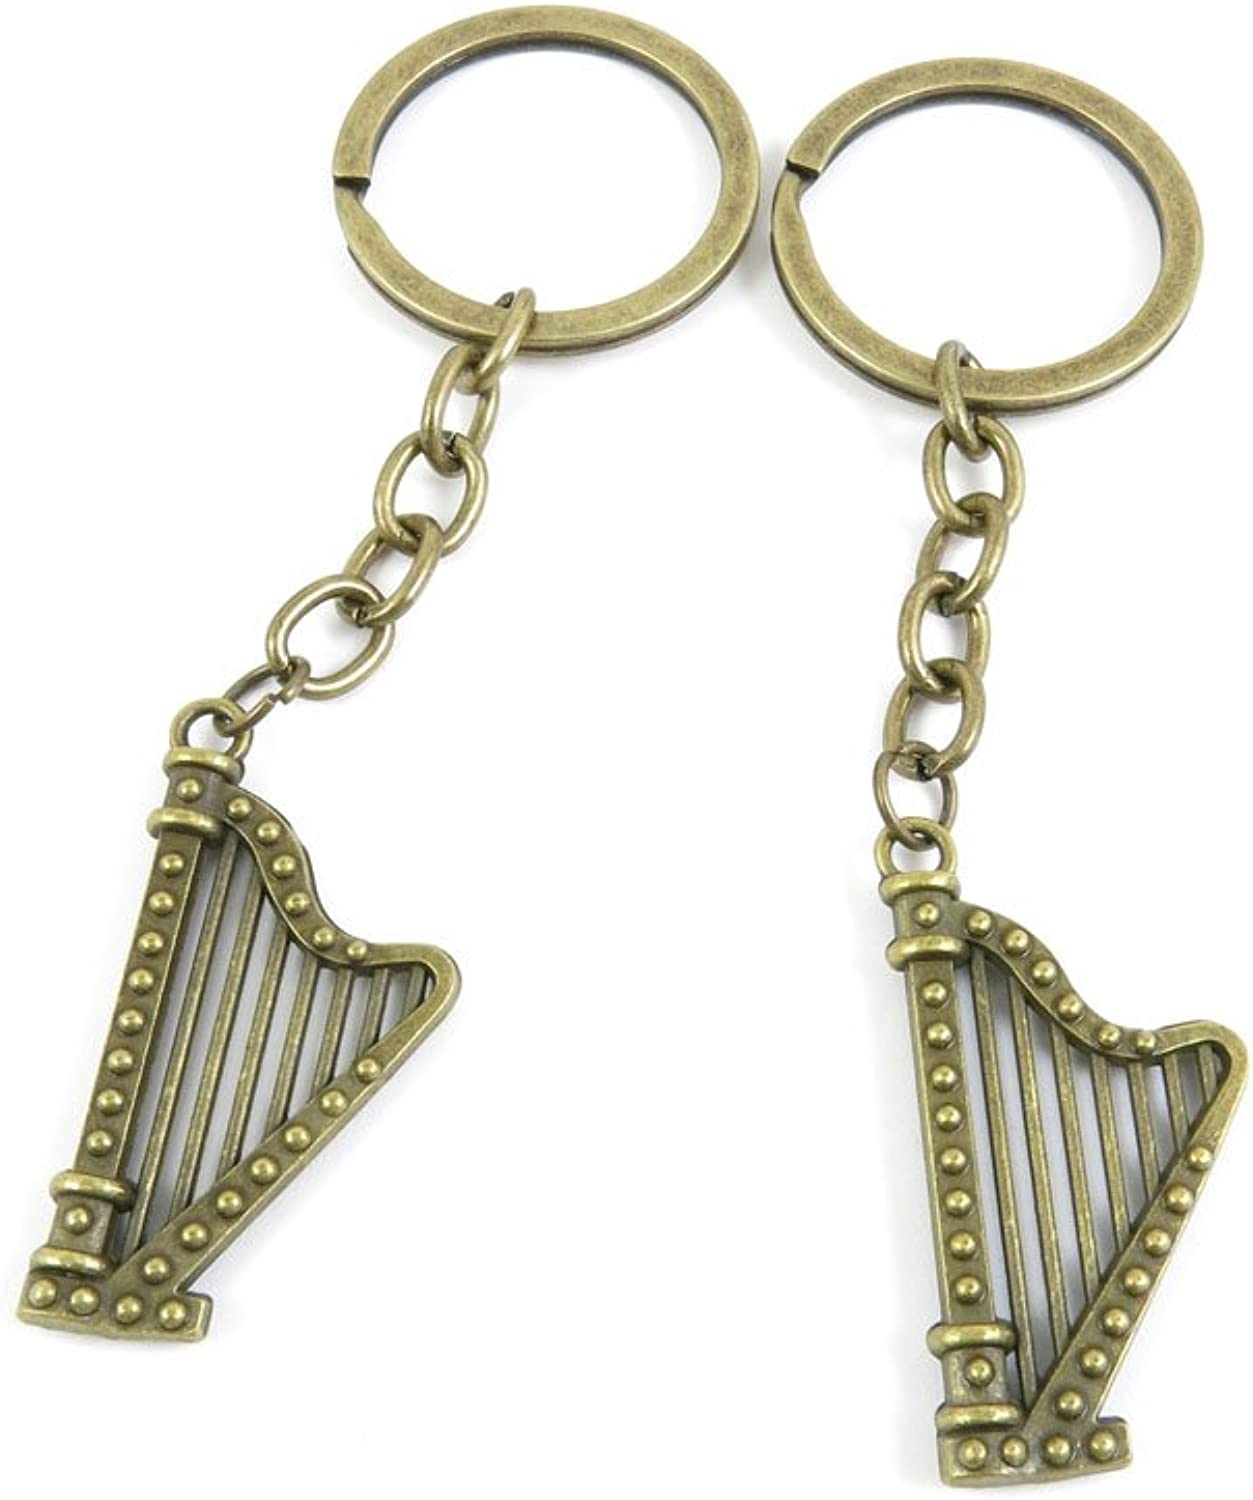 100 PCS Keyrings Keychains Key Ring Chains Tags Jewelry Findings Clasps Buckles Supplies Q3MT0 Irish Harp